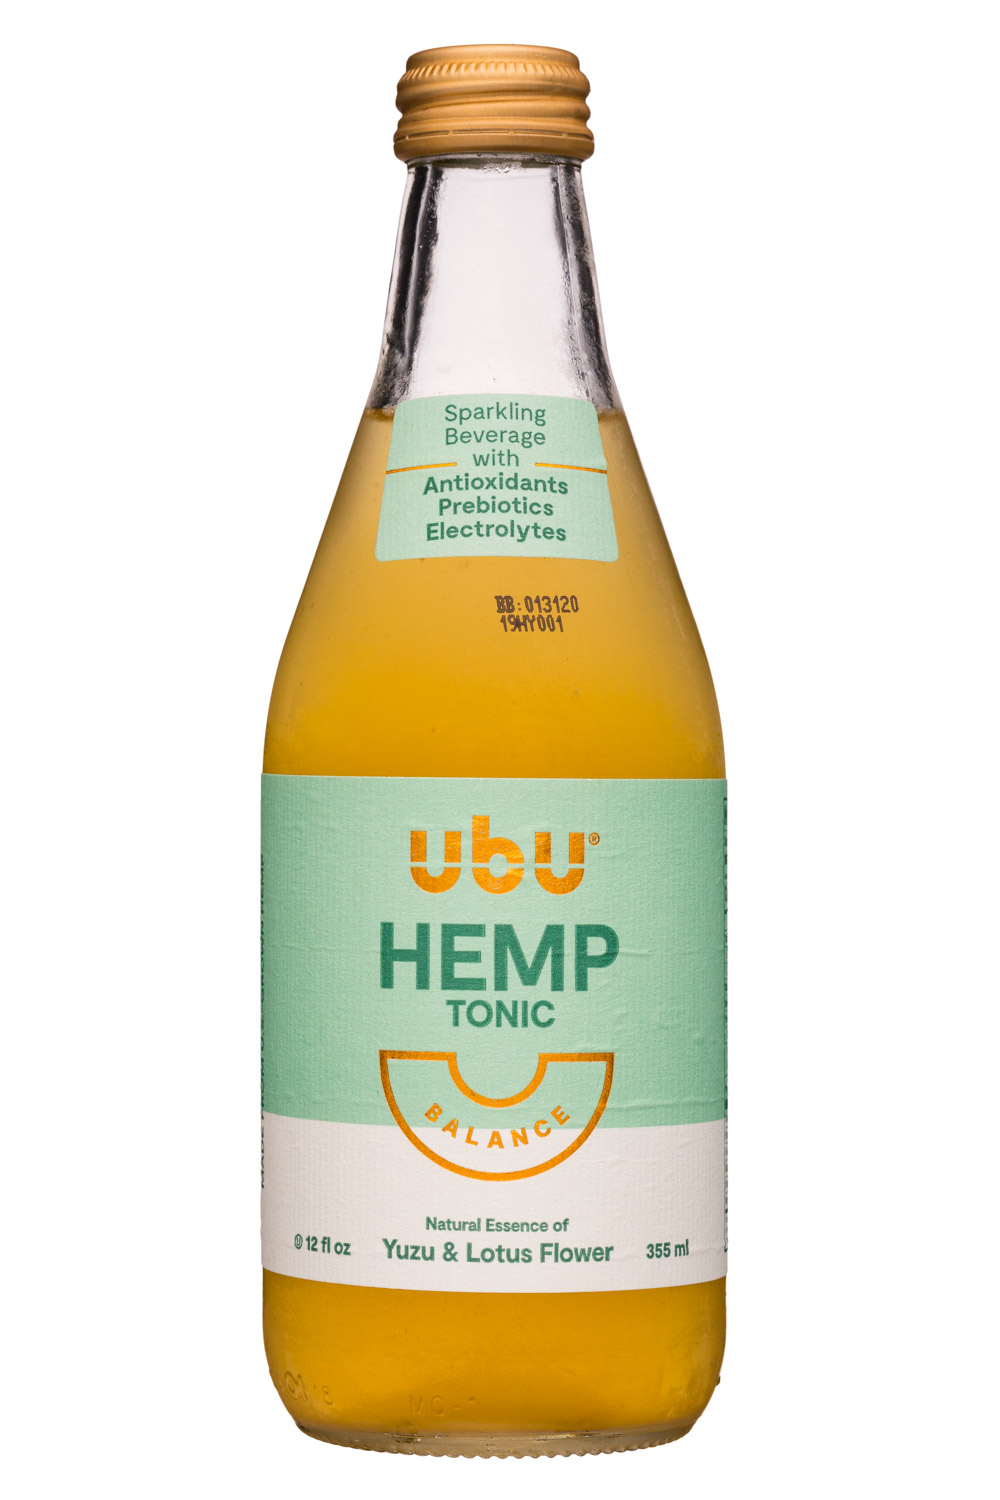 Balance - HEMP TONIC: Yuzu & Lotus Flower